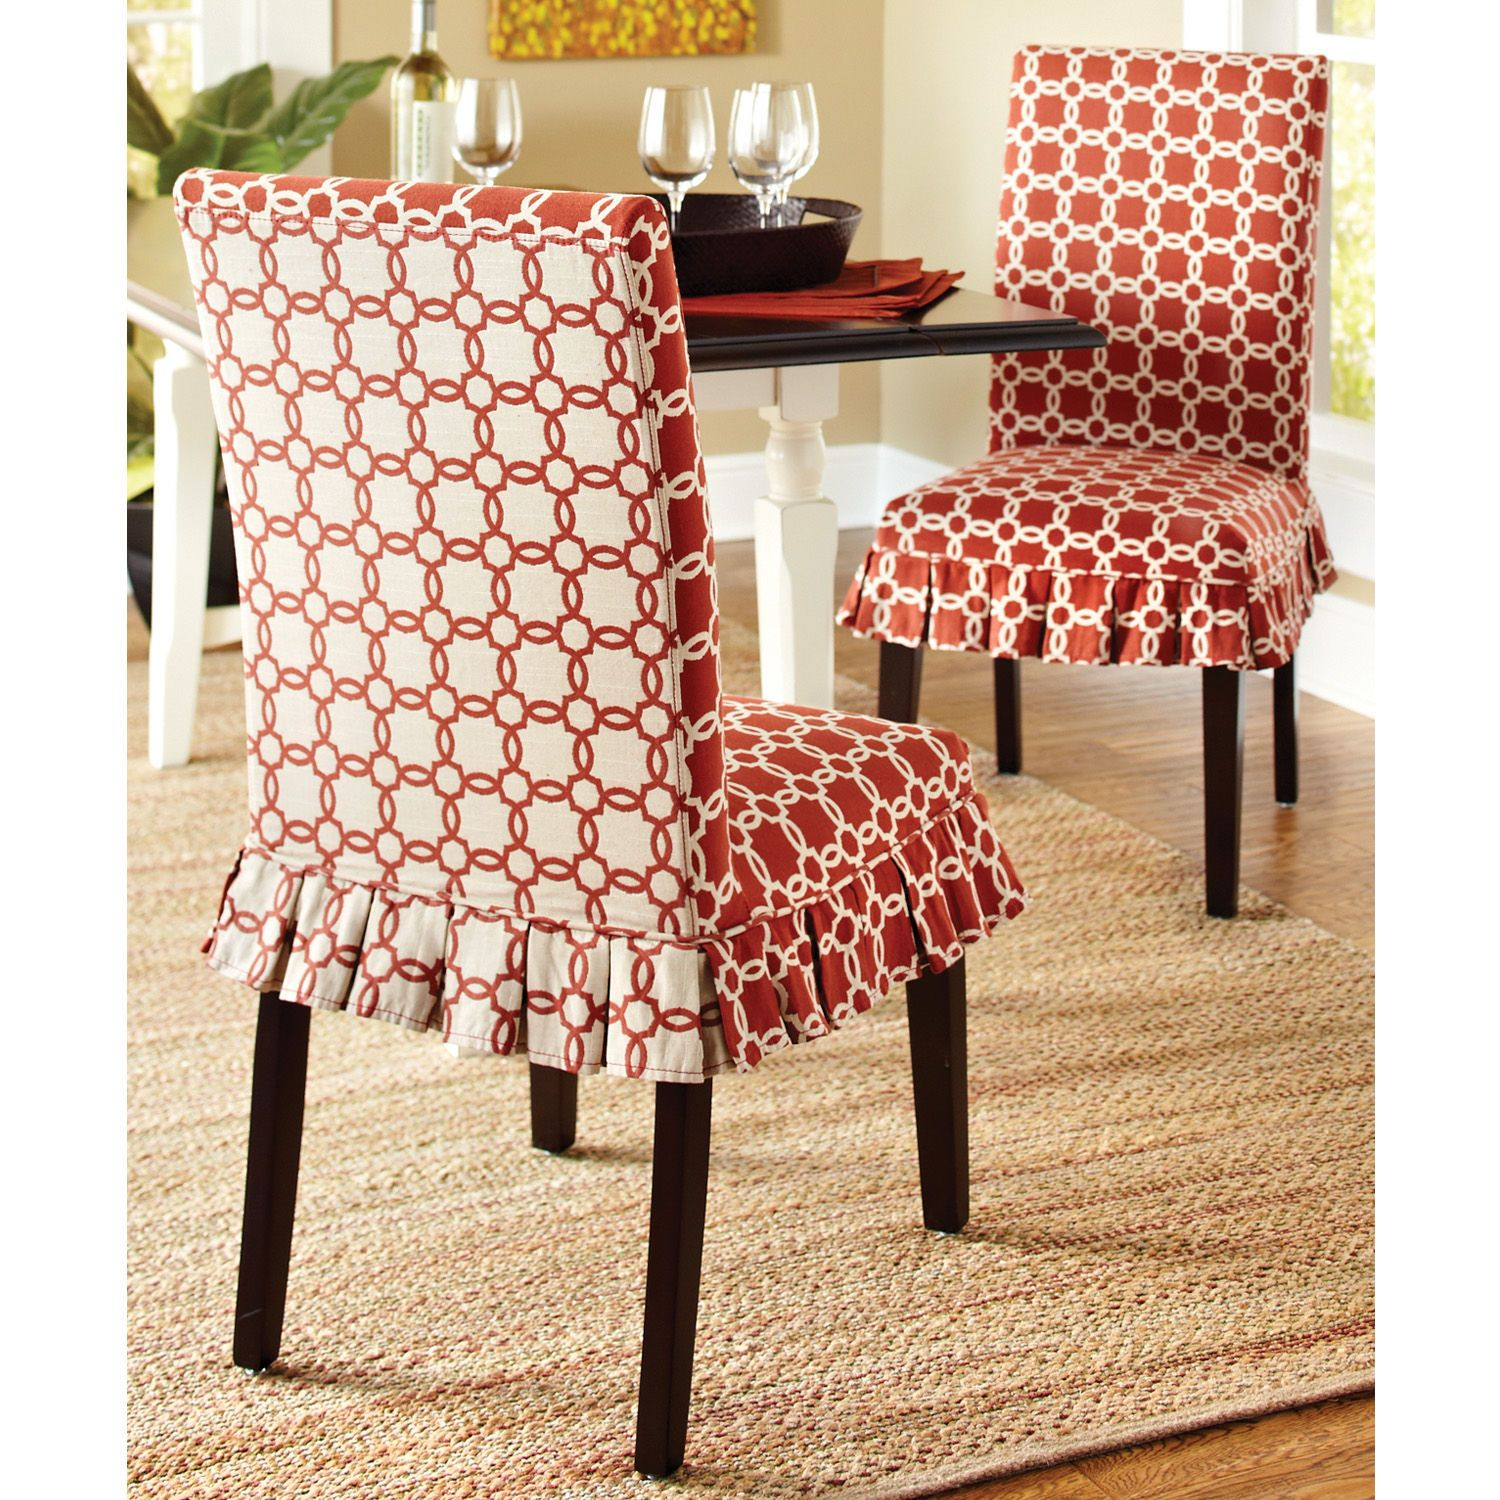 How fun are these slipcovers from Pier 1 Slipcovers for